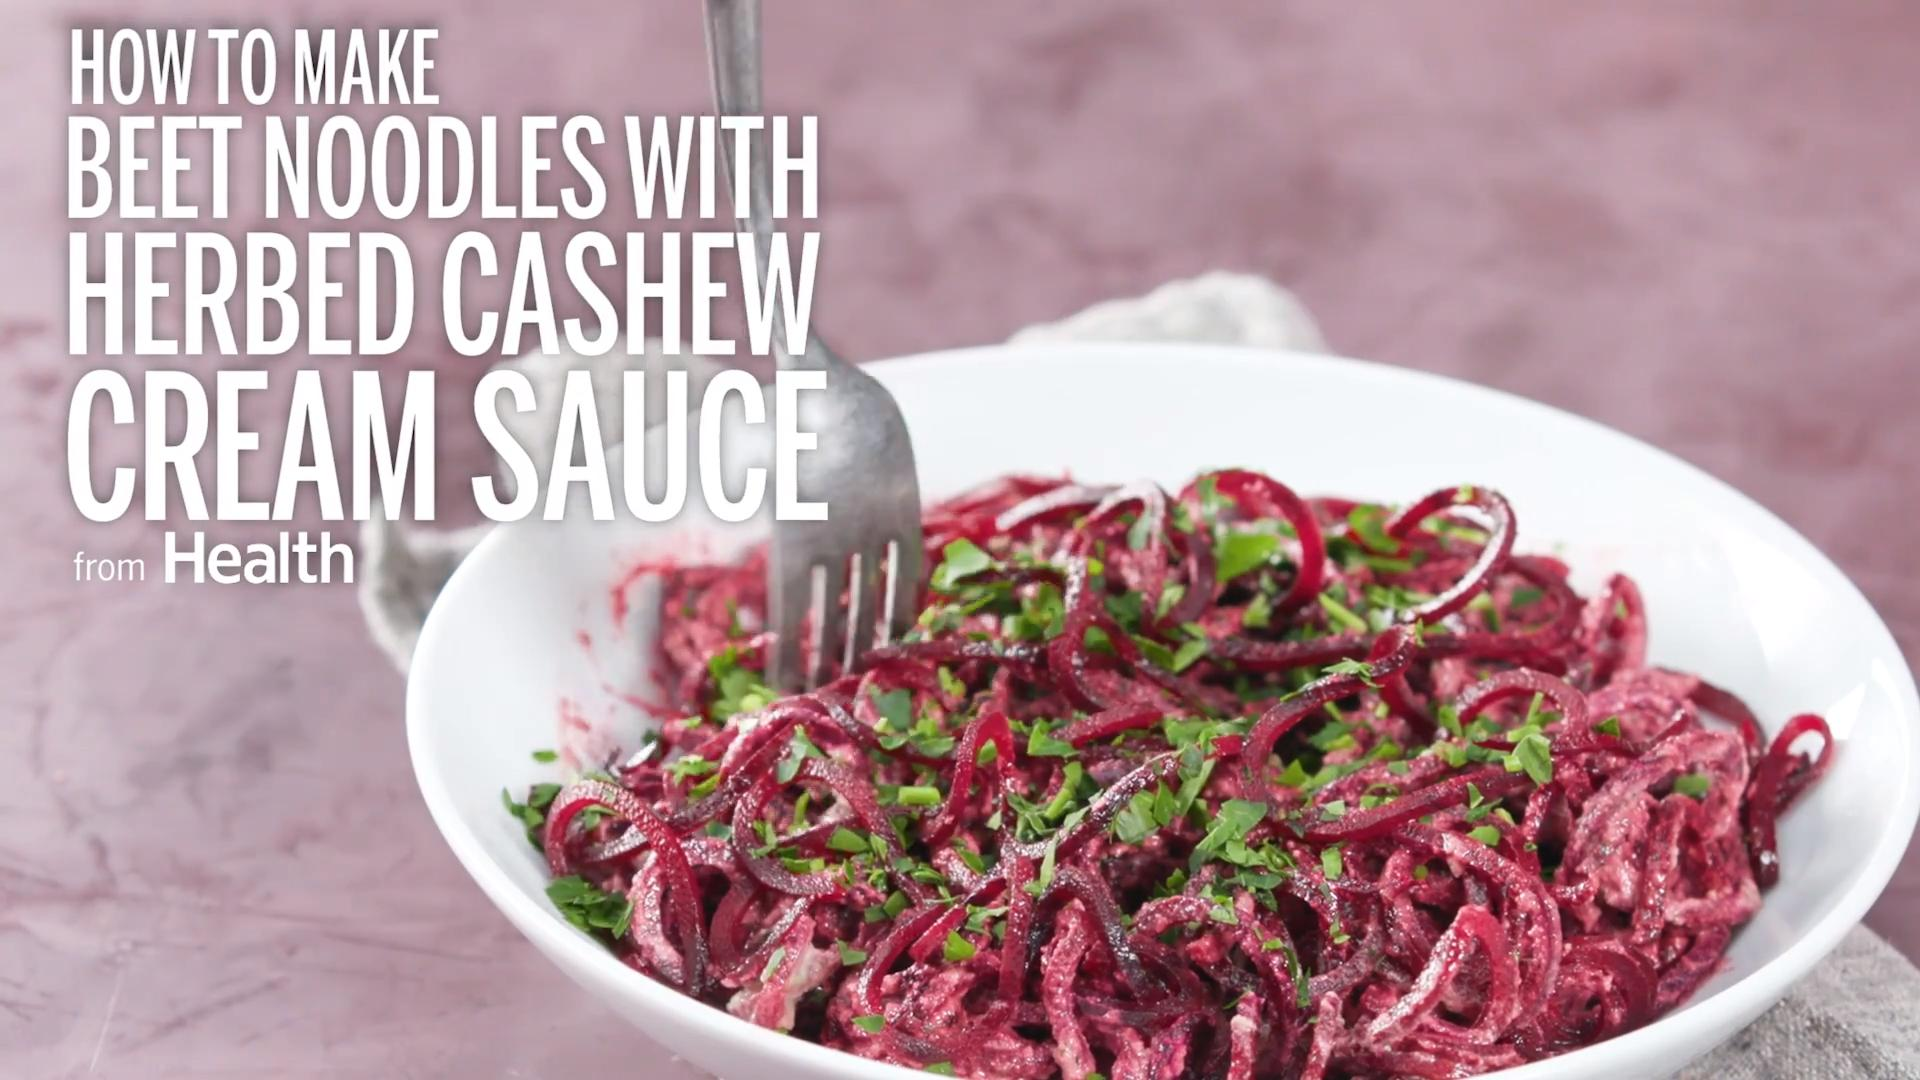 Beet Noodles With Herbed Cashew Cream Sauce